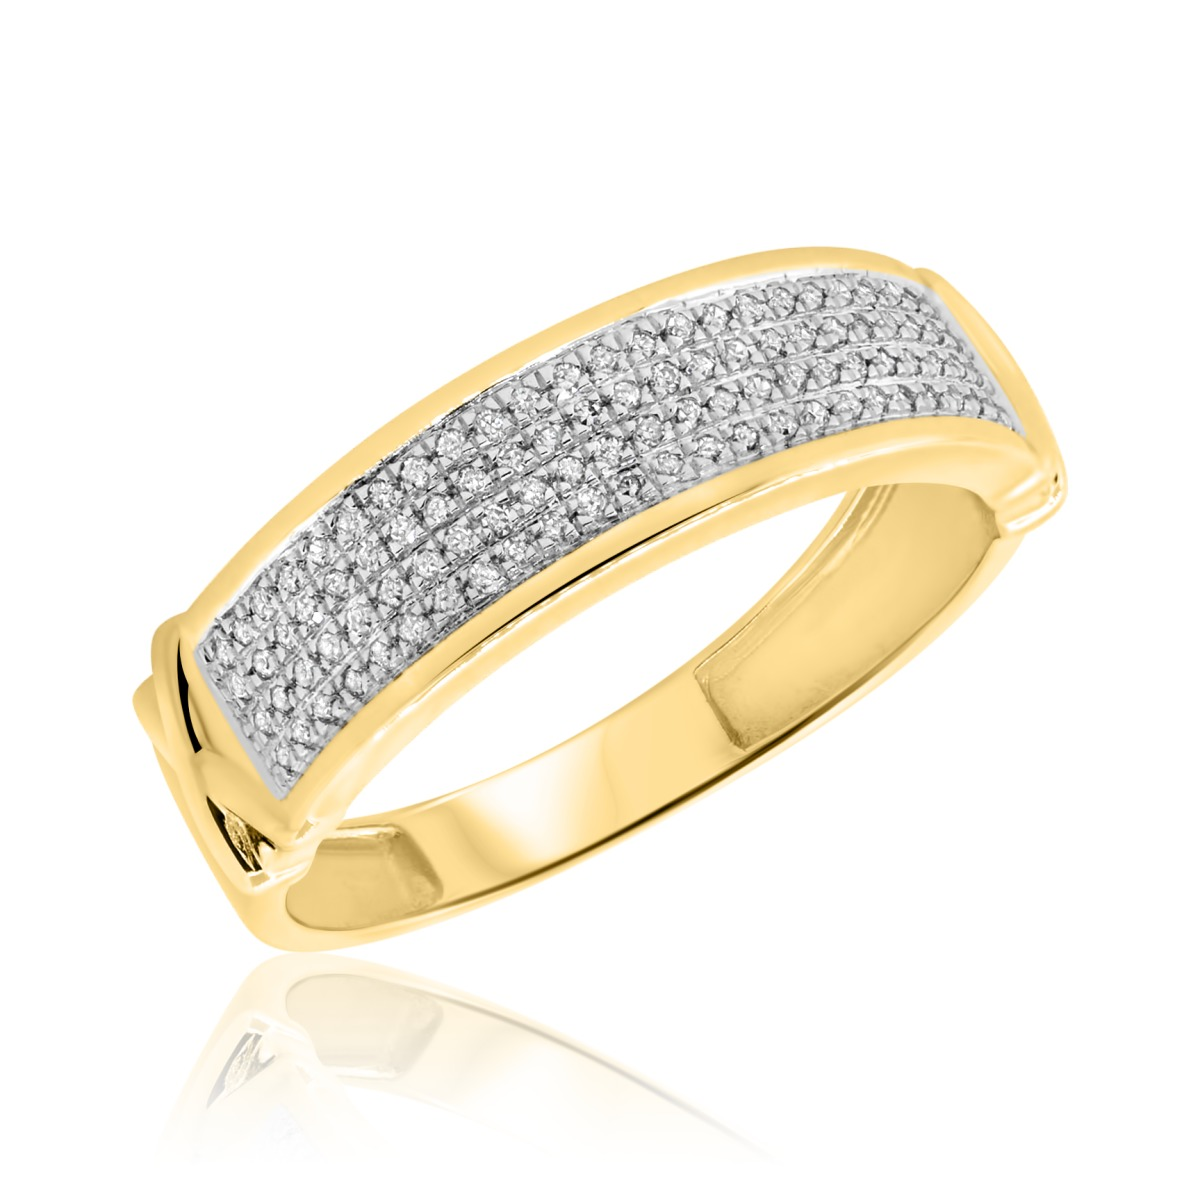 1 4 ct t w diamond mens wedding band 10k yellow gold for Men s 1 carat diamond wedding bands